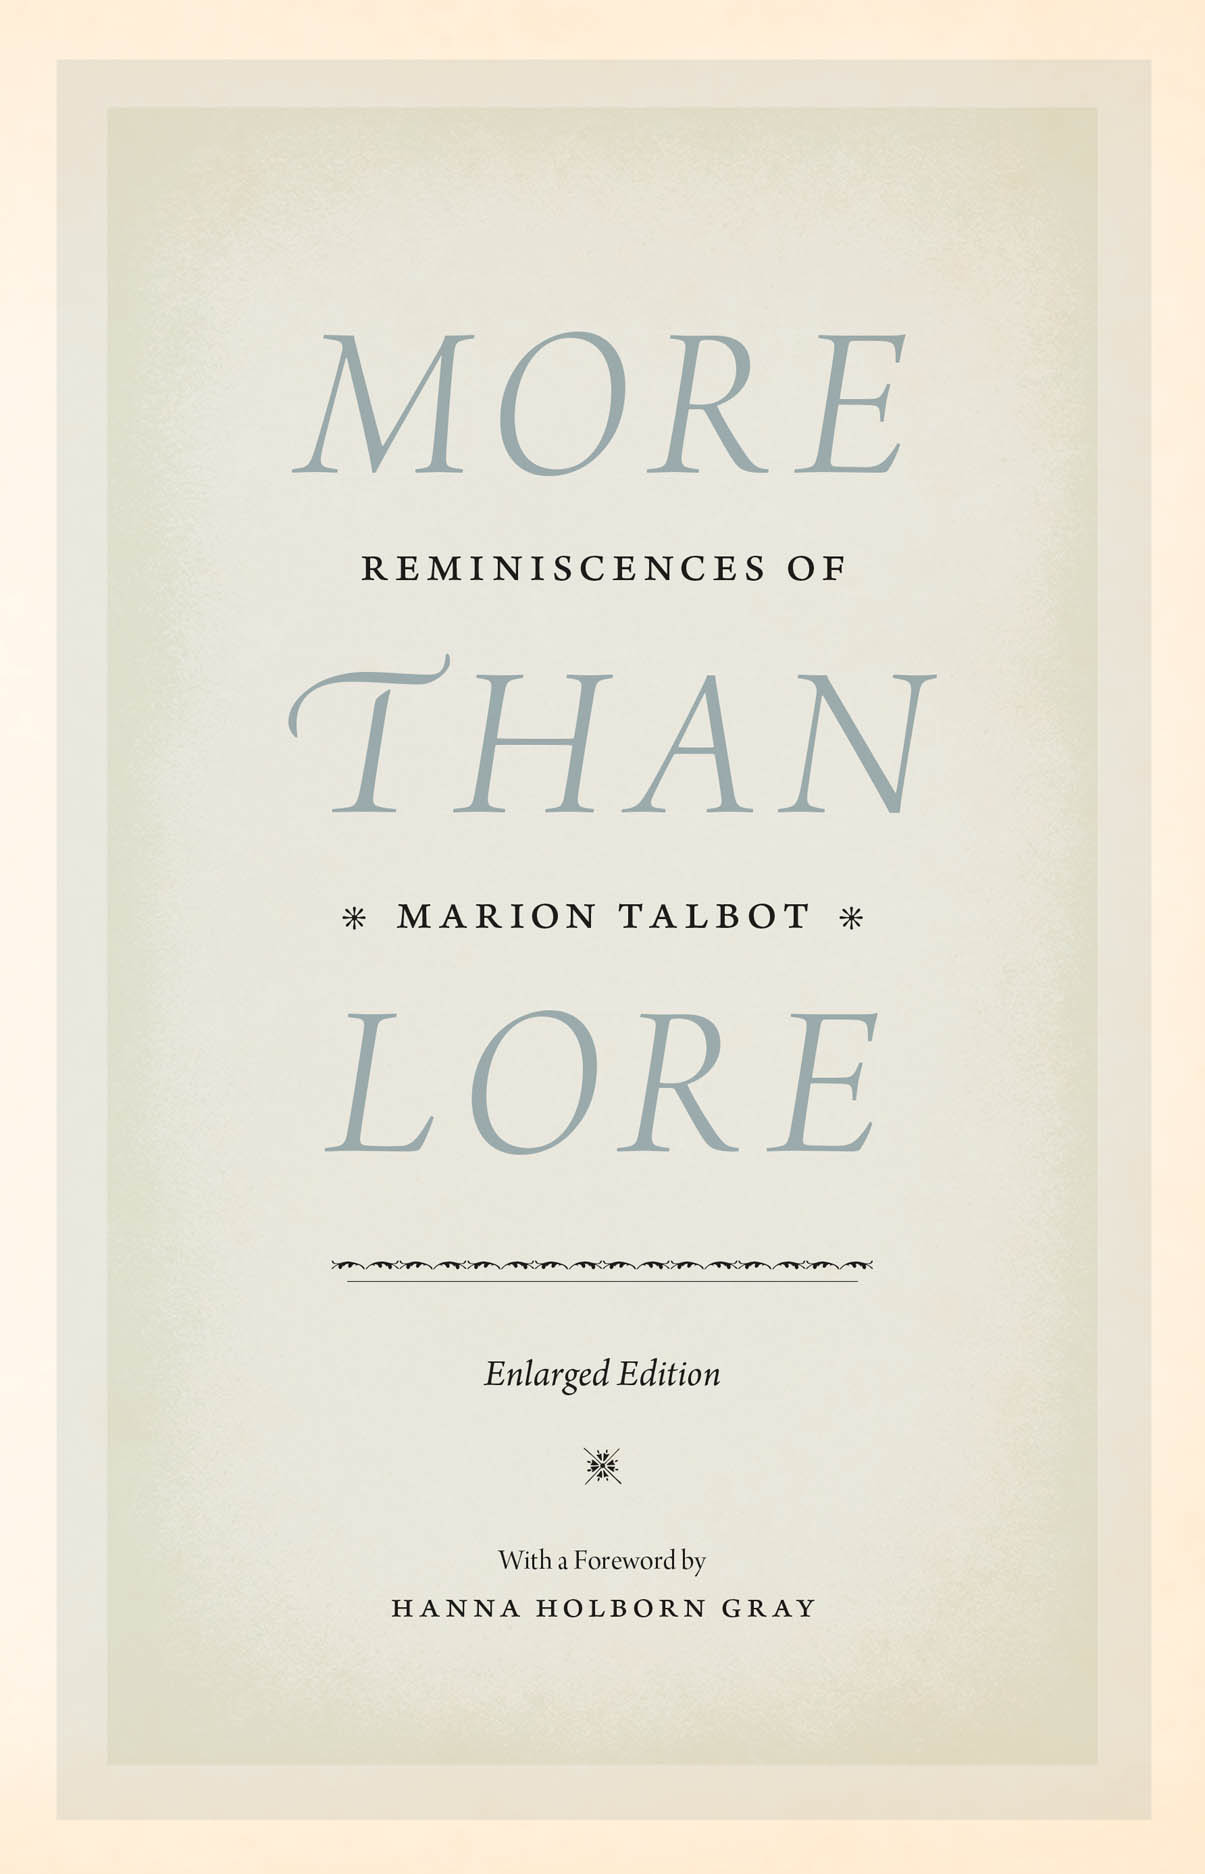 More than Lore: Reminiscences of Marion Talbot